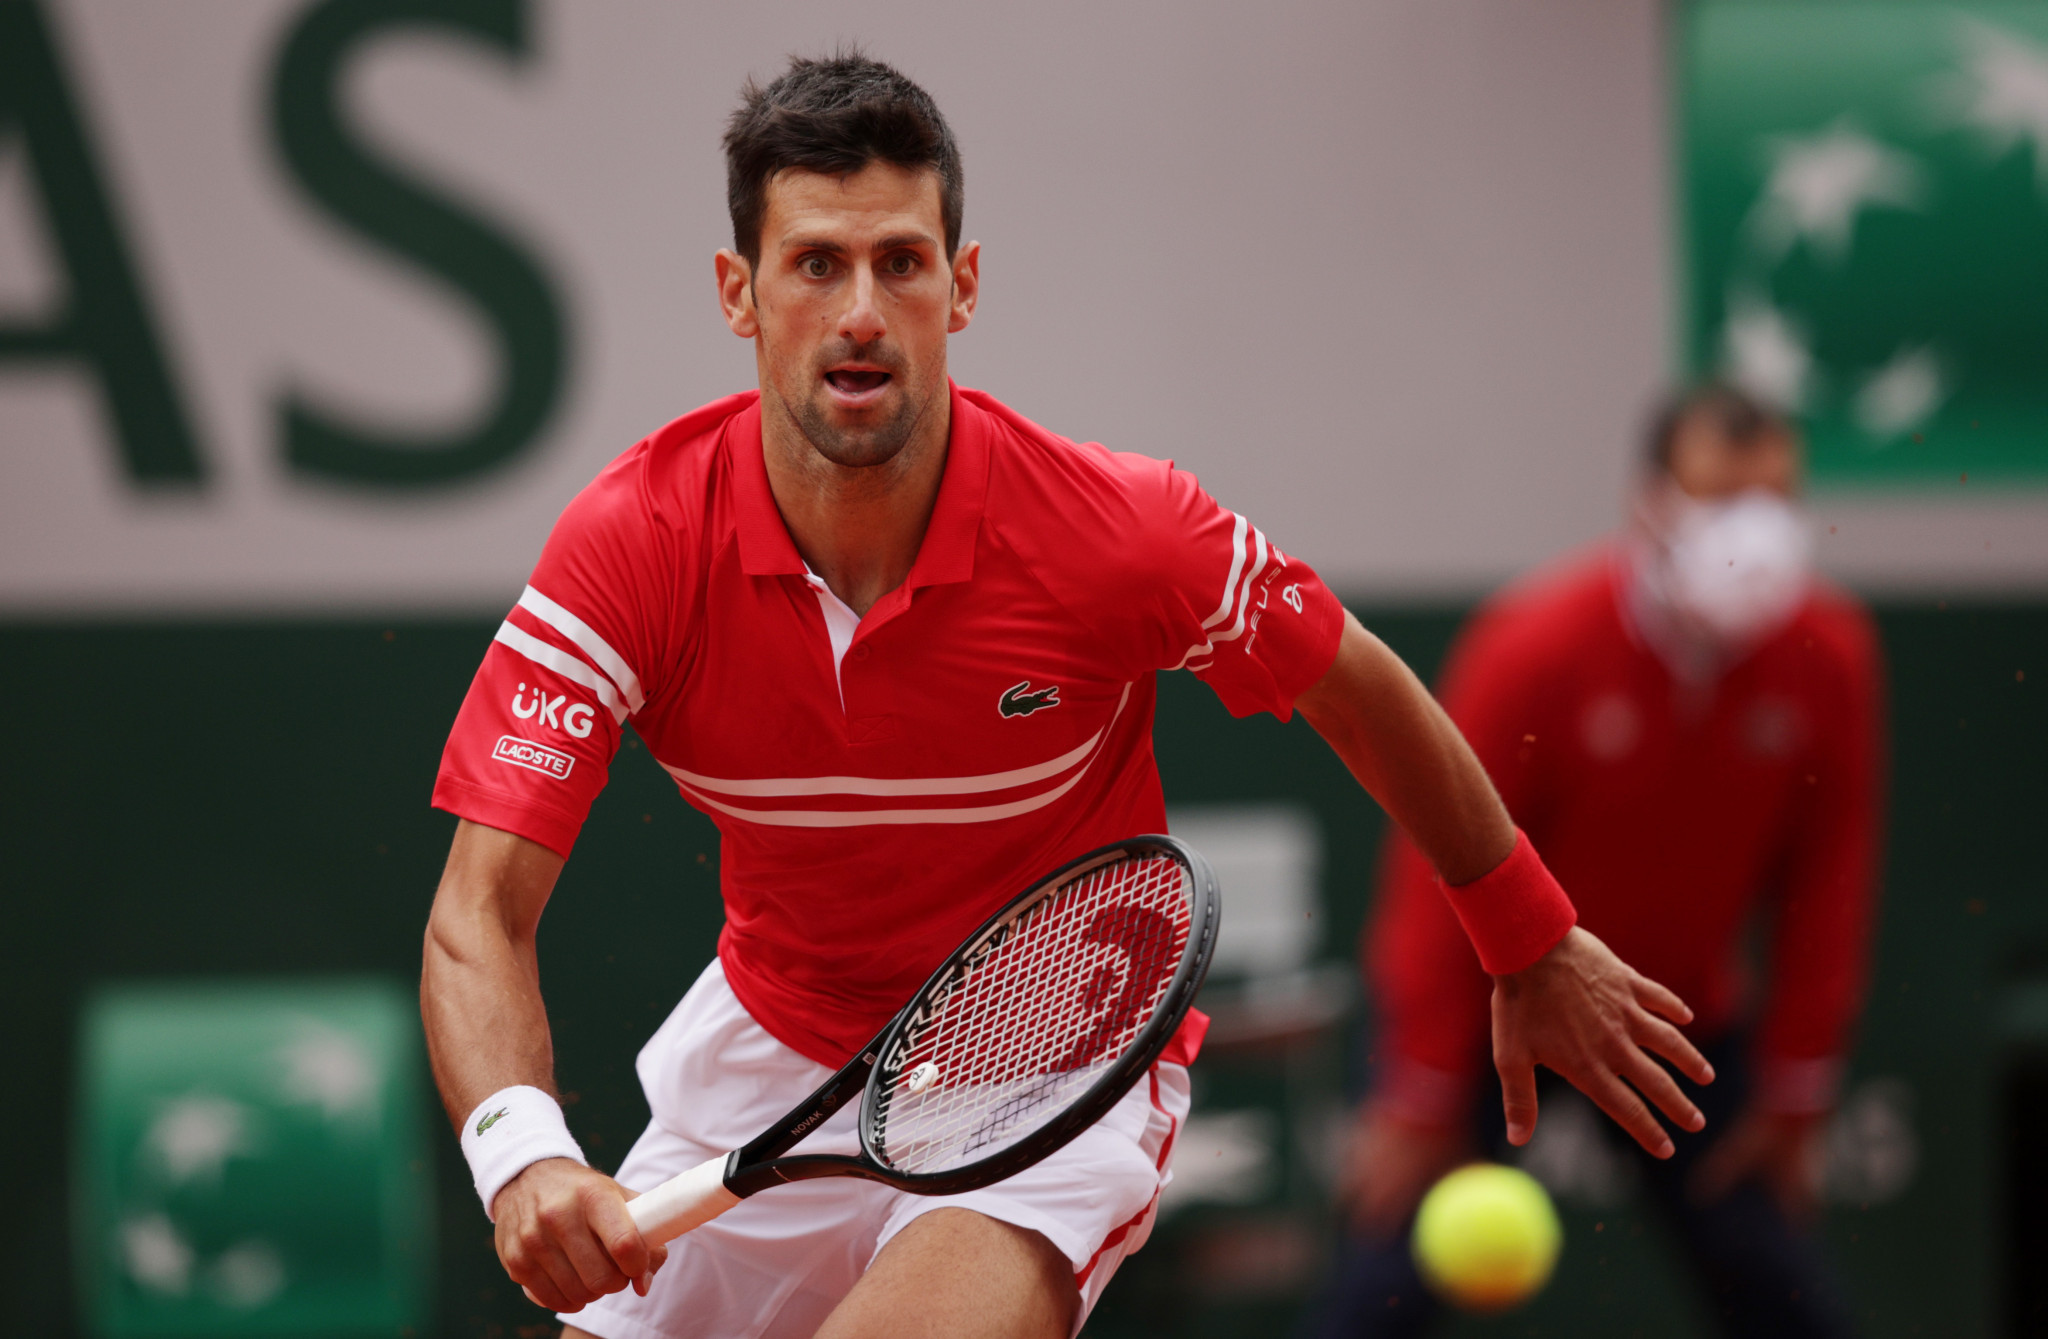 Novak Djokovic chases down the ball as he continues his bid to claim a second French Open title ©Getty Images